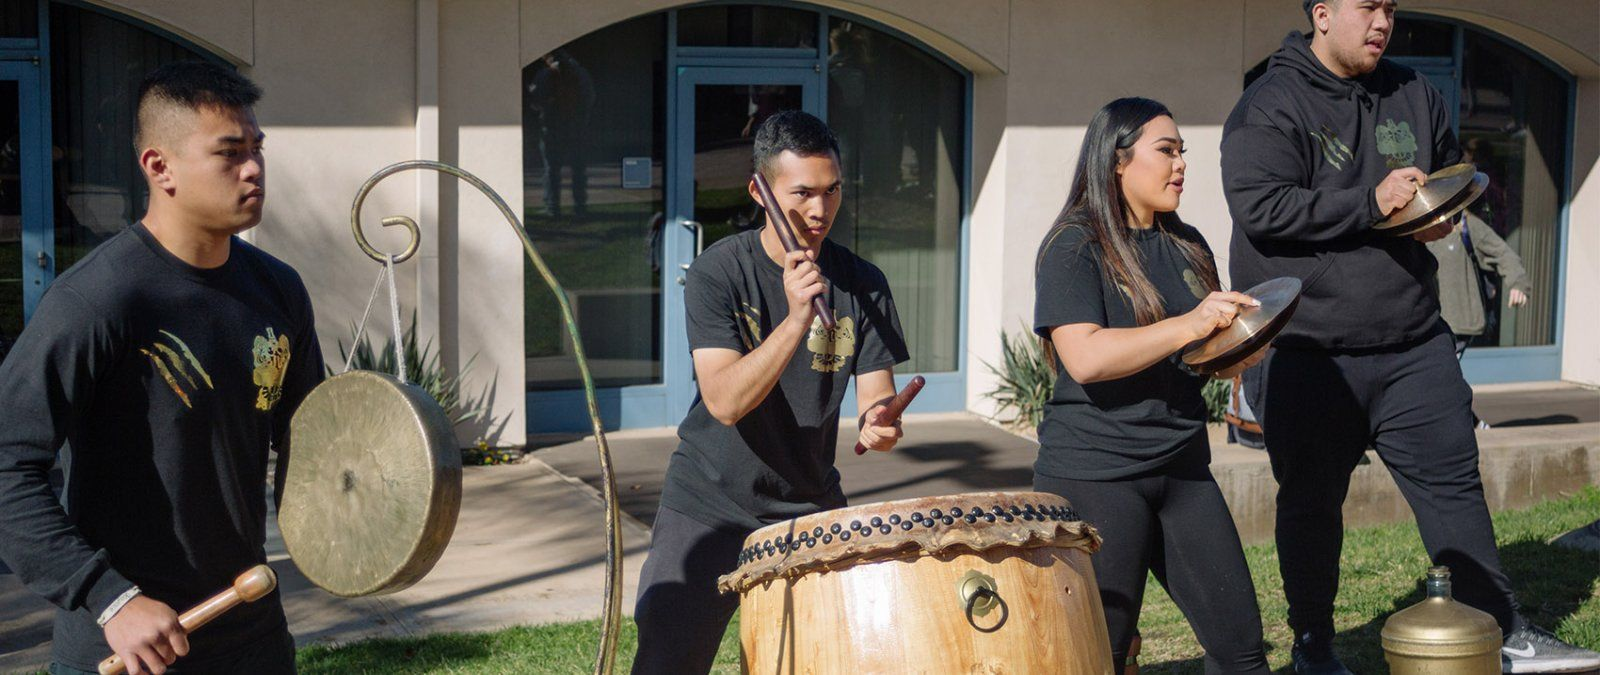 The Asian Student Union club performs with drums and cymbals on the Campus Mall